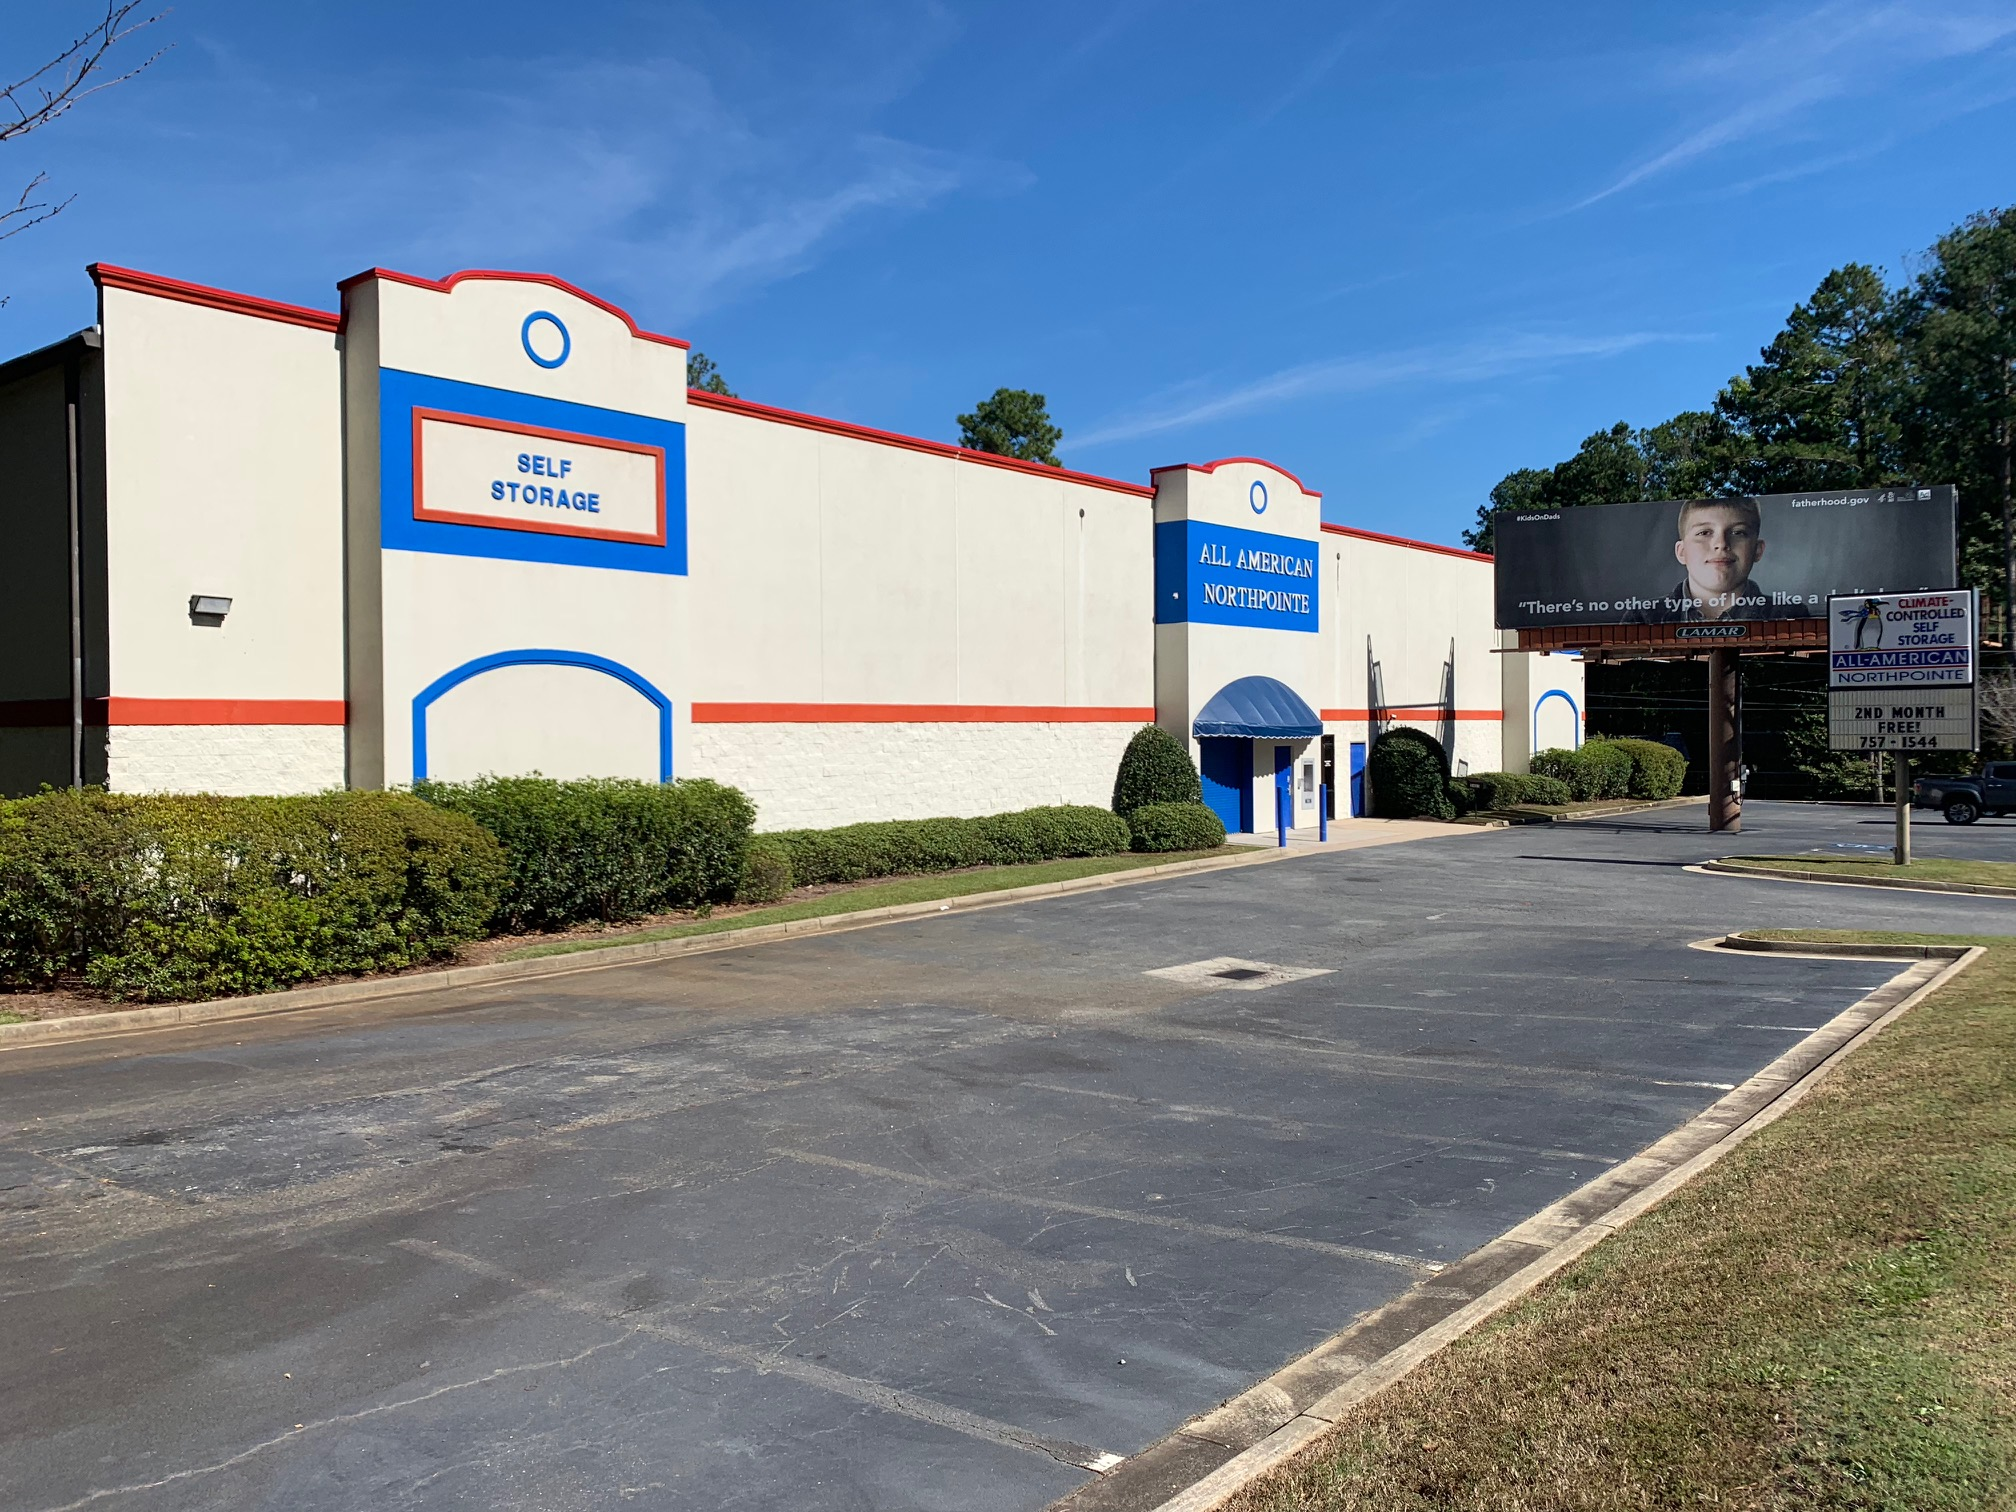 All-American Self Storage - Northpointe